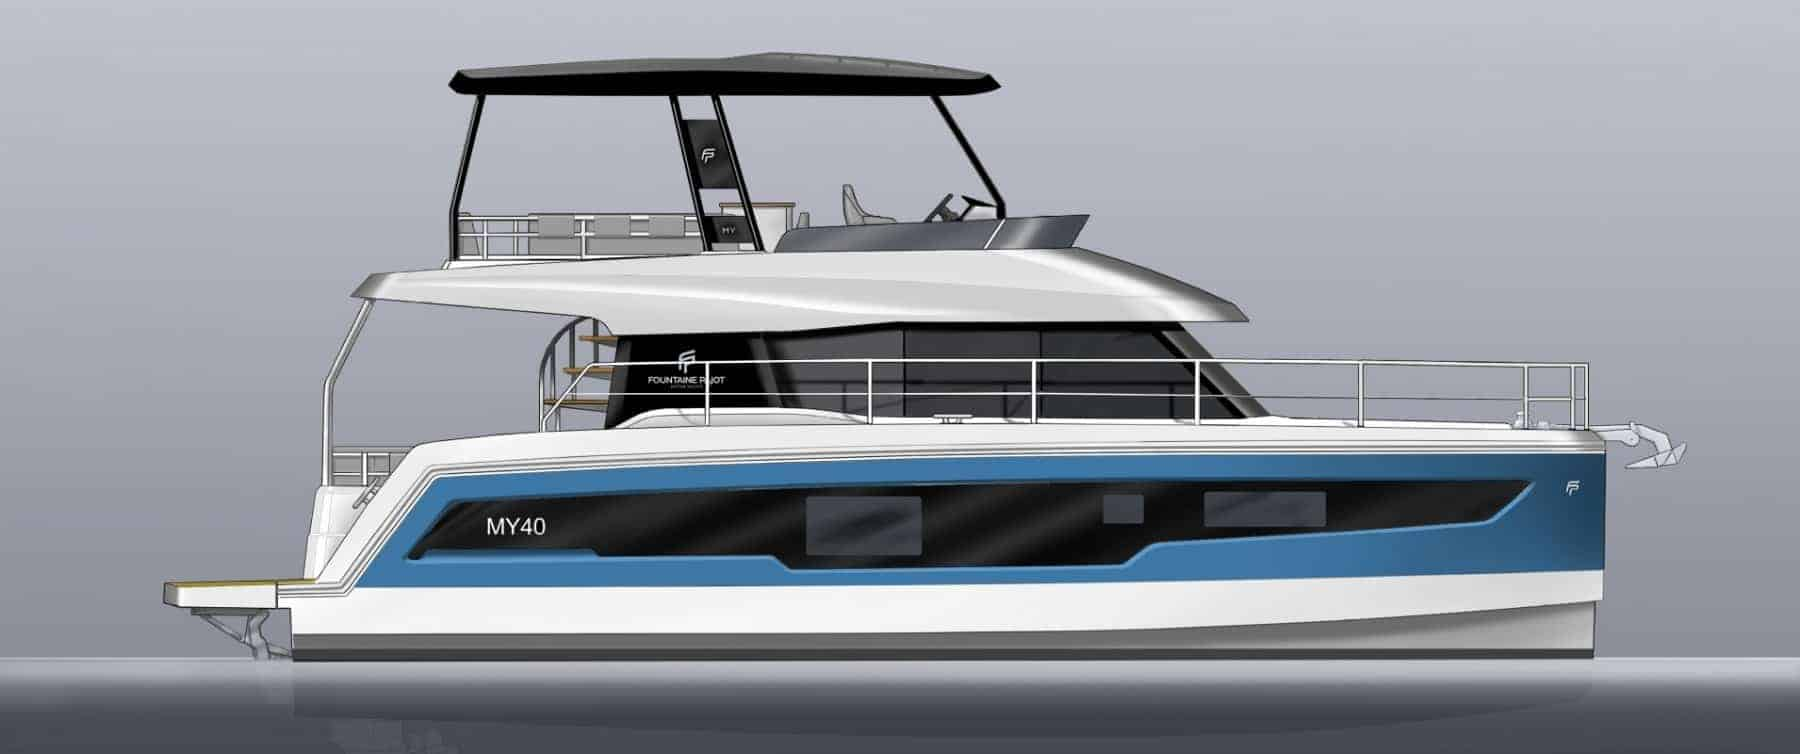 Animated and coloured Fountaine Pajot Motor yacht 40 in profile